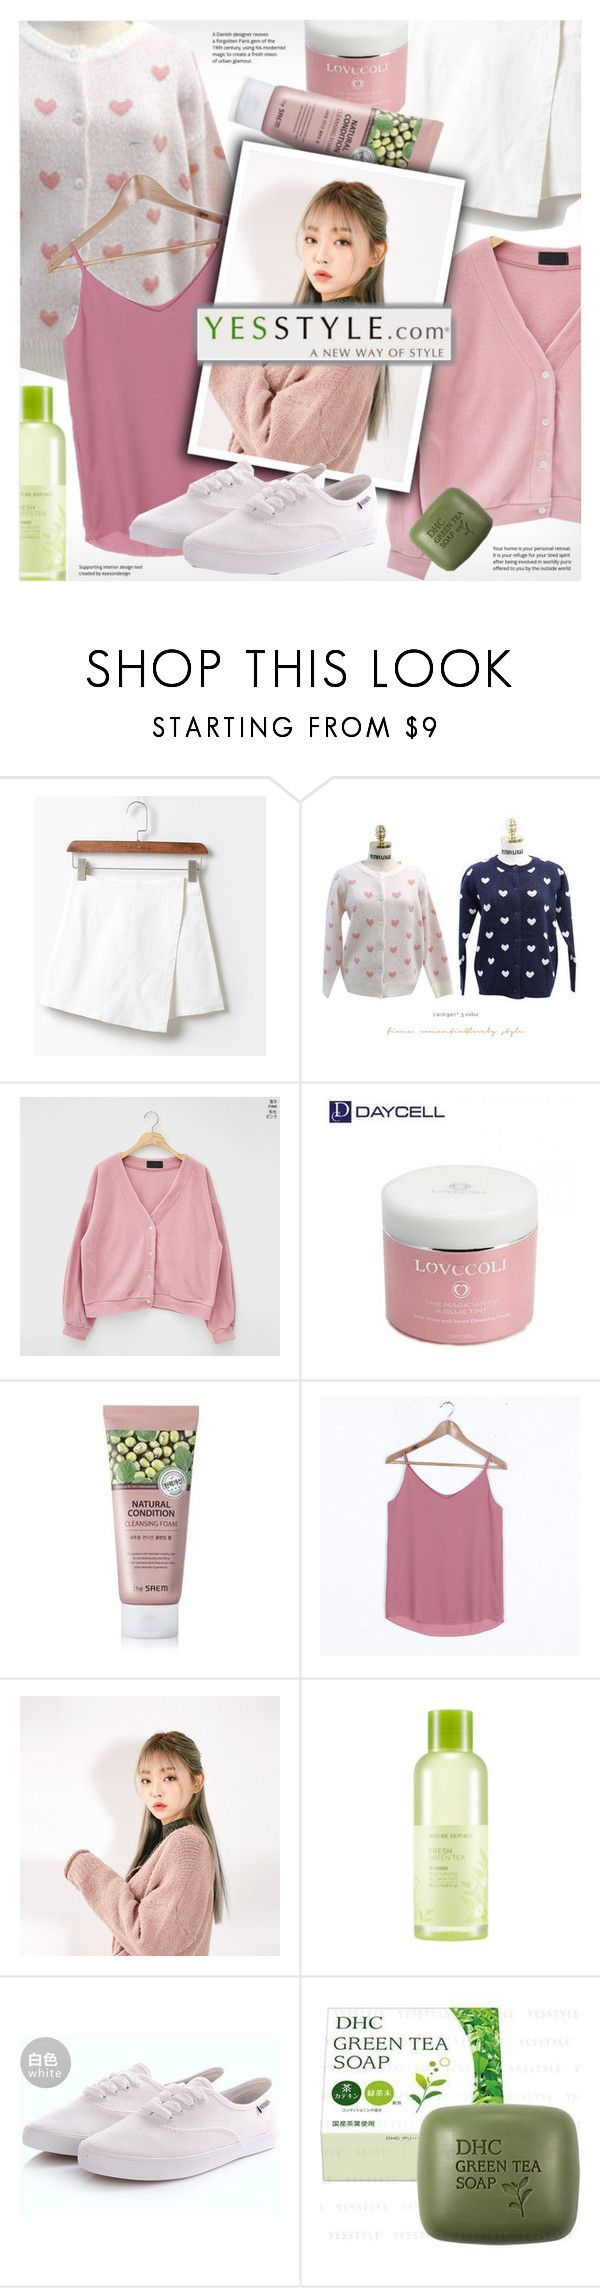 """""""YesStyle ootd with cardigans"""" by vn1ta ❤ liked on Polyvore featuring MyFiona, chuu, White Label, nature republic, Renben, Winter, ootd, cardigans and yesstyle"""